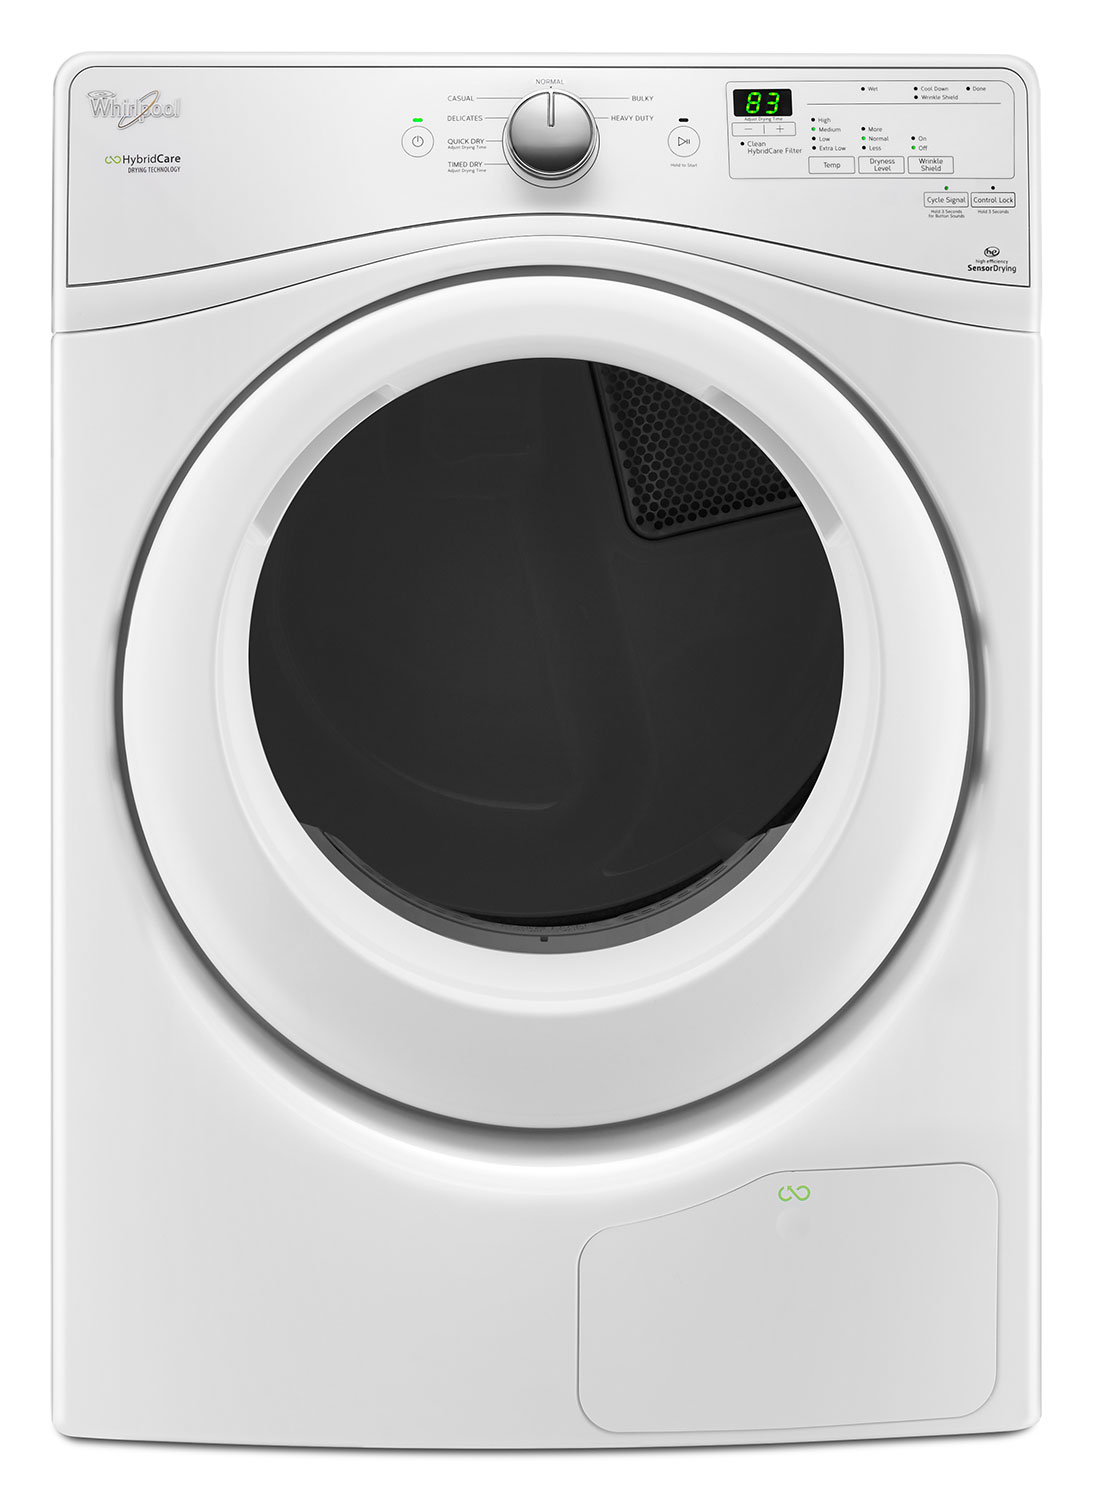 Whirlpool White Electric Heat Pump Dryer (7.4 Cu. Ft.) - YWED7990FW